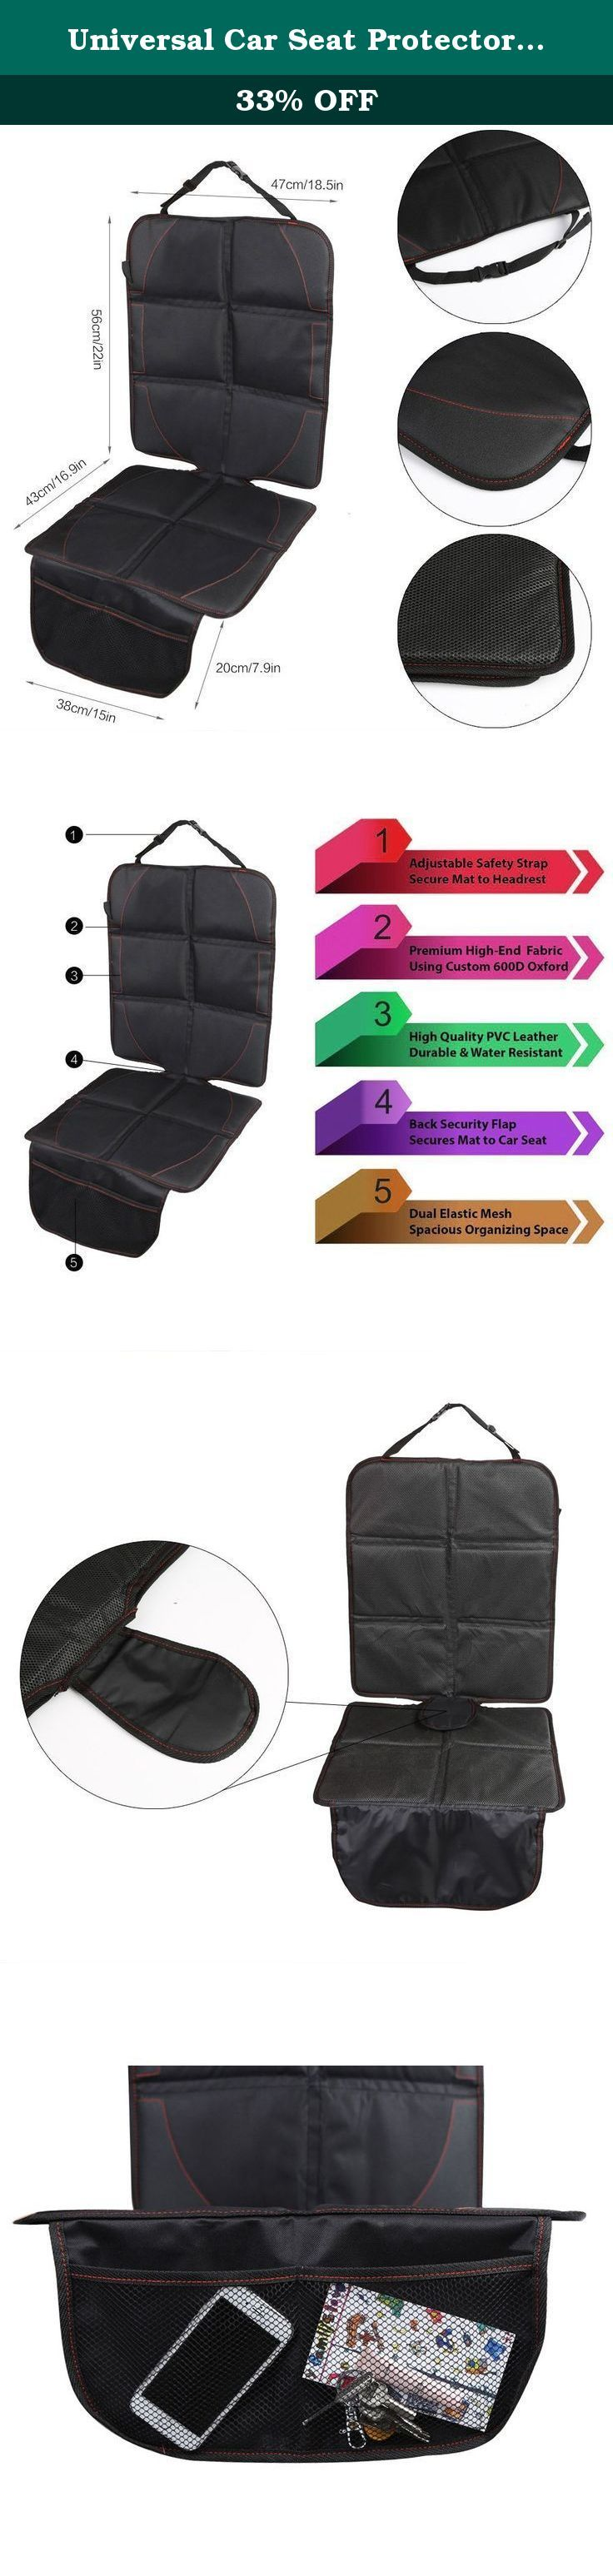 Universal Car Seat Protector Anti Slip Wear-resisting Cover Children Long Car Seat Mat with Storage Bag Black. Features: Quality thick material mixed with foam interlayer, relieves pressure of baby safety seat for car seat Comes with storage bag, convenient for water bottle, cup, cell phone, tissue, etc. Enhanced sitting comfort to protect your car seat and also play a decorative role Easy installation, wear-resisting, waterproof and easy cleaning General car seat mat fits any season...